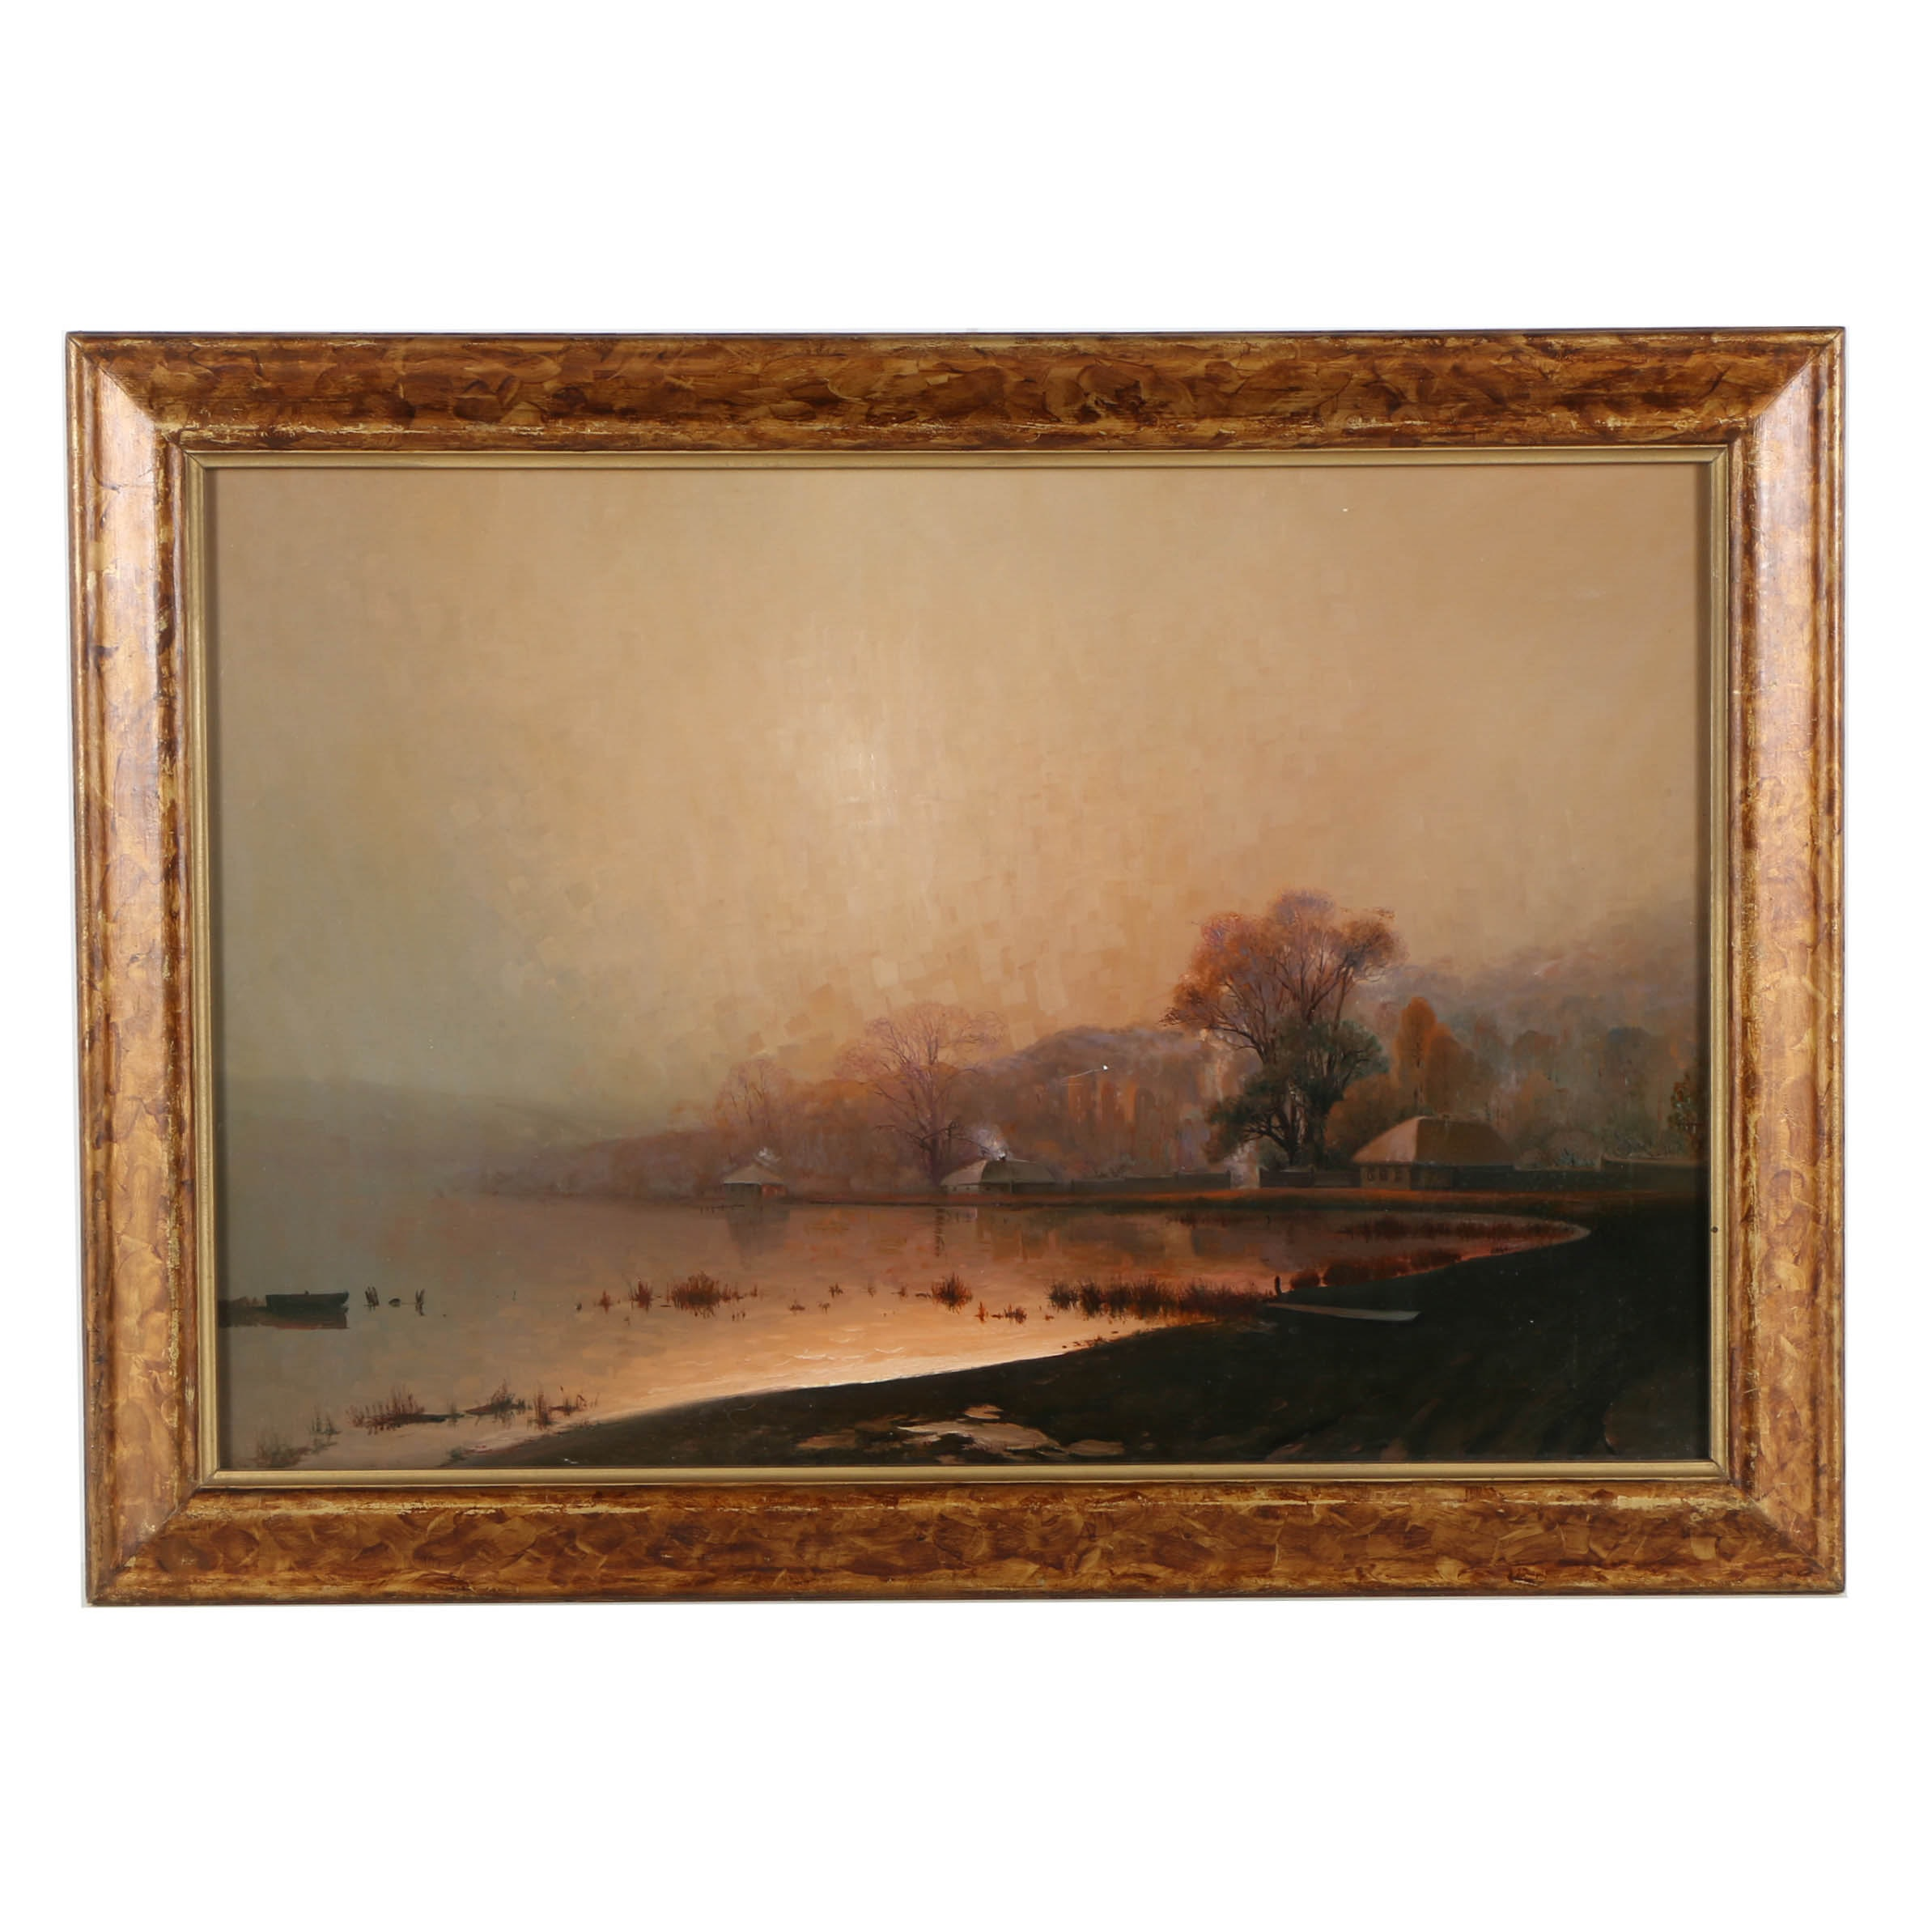 20th Century Oil Painting on Canvas of a Lakeside Landscape